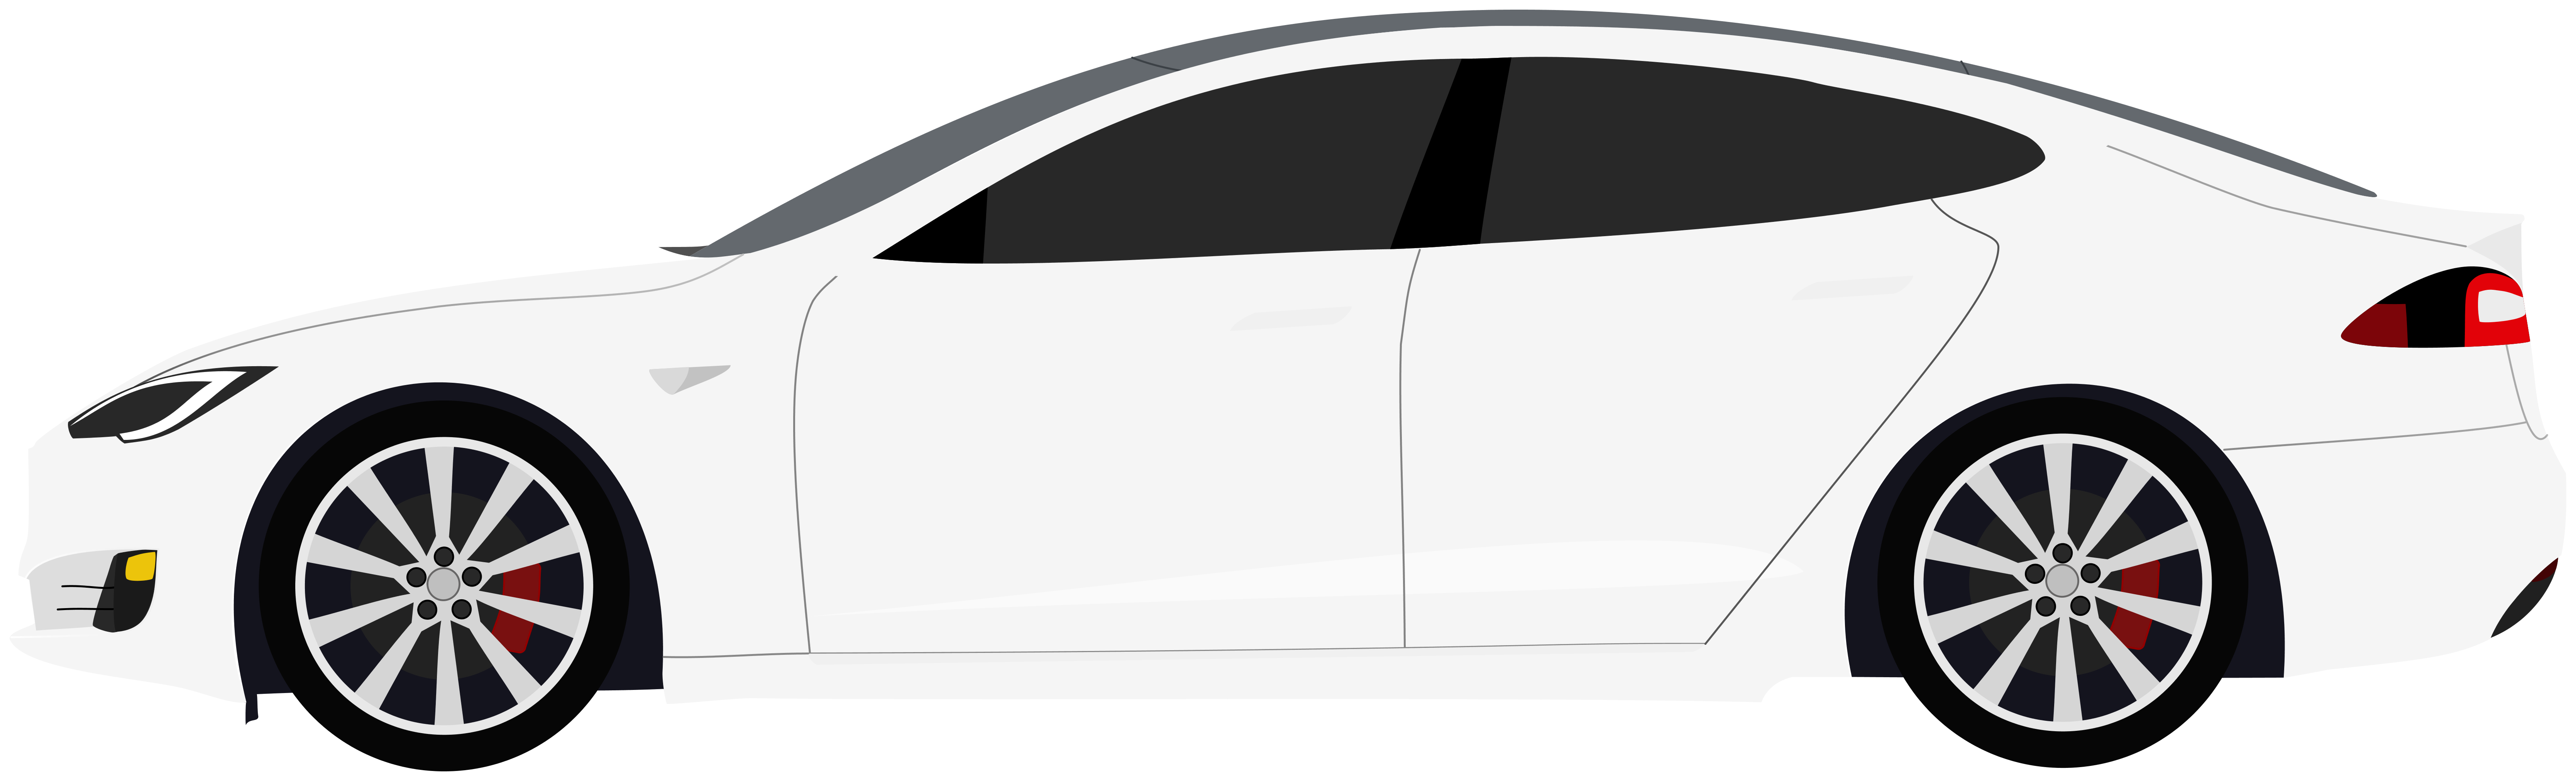 Browse imgur for cliparts image library library Fan-made Tesla Cars & Supercharger Cliparts - Album on Imgur image library library